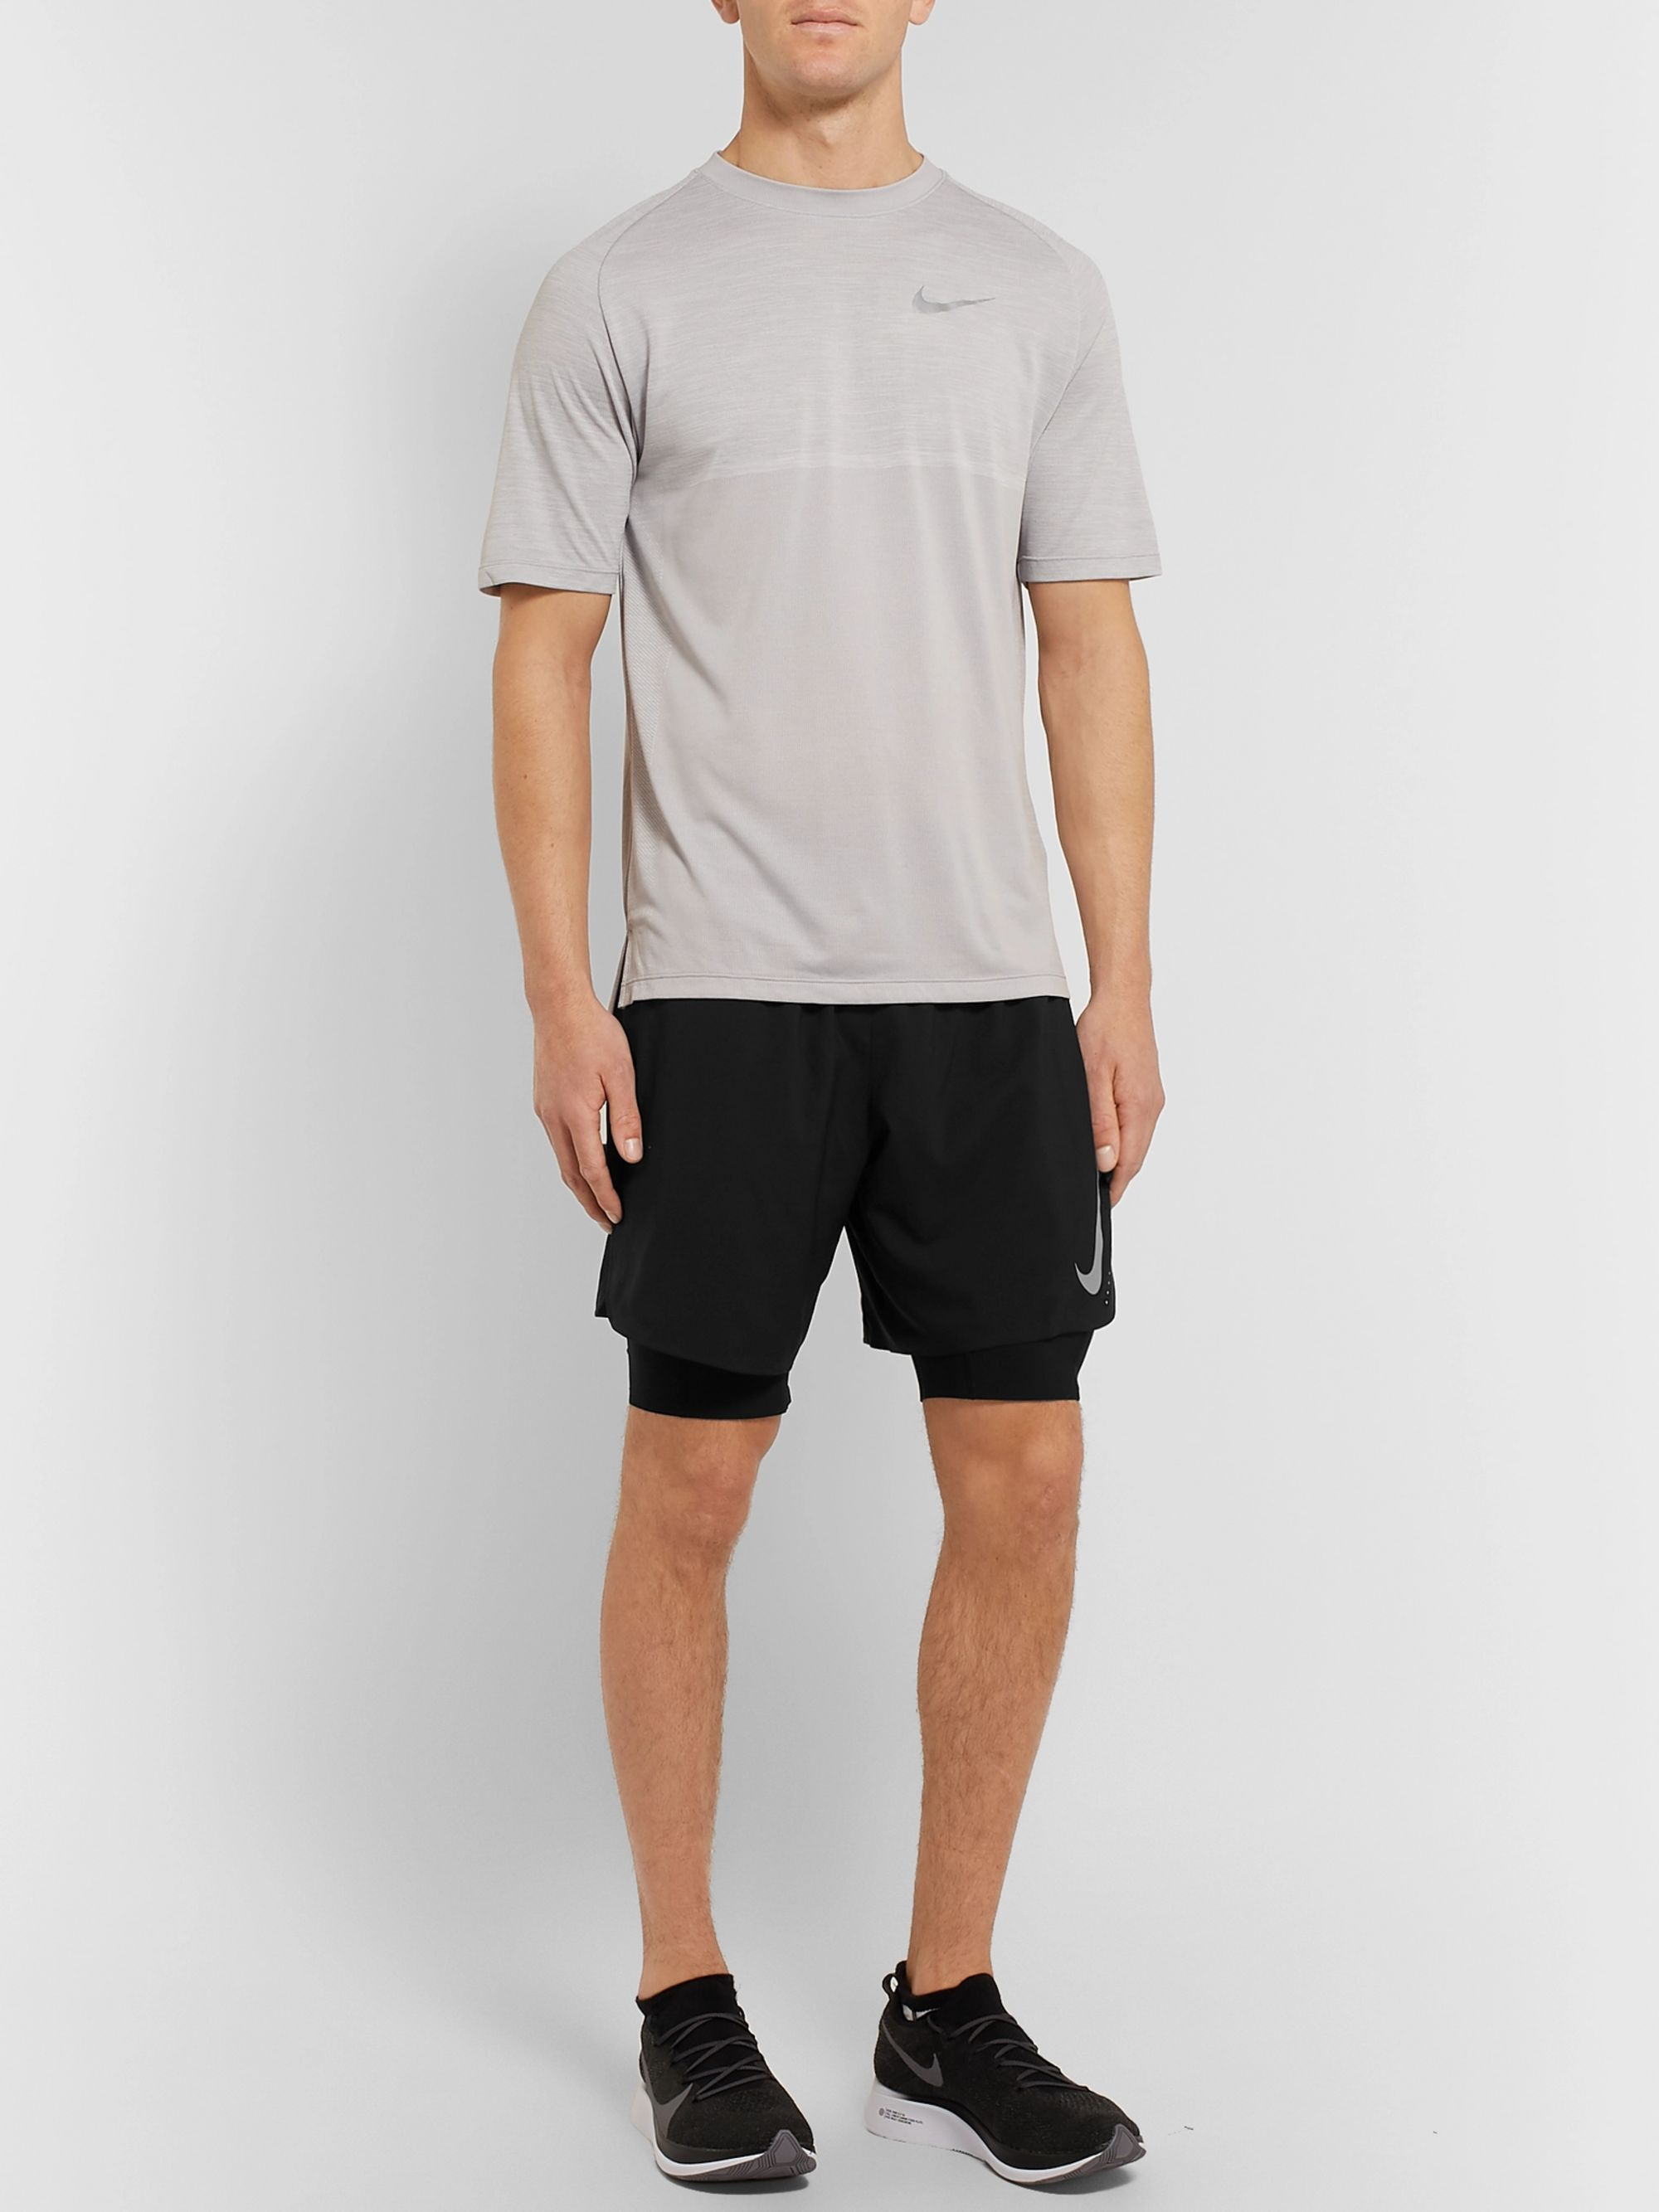 Iffley Road Chester Compression Shorts